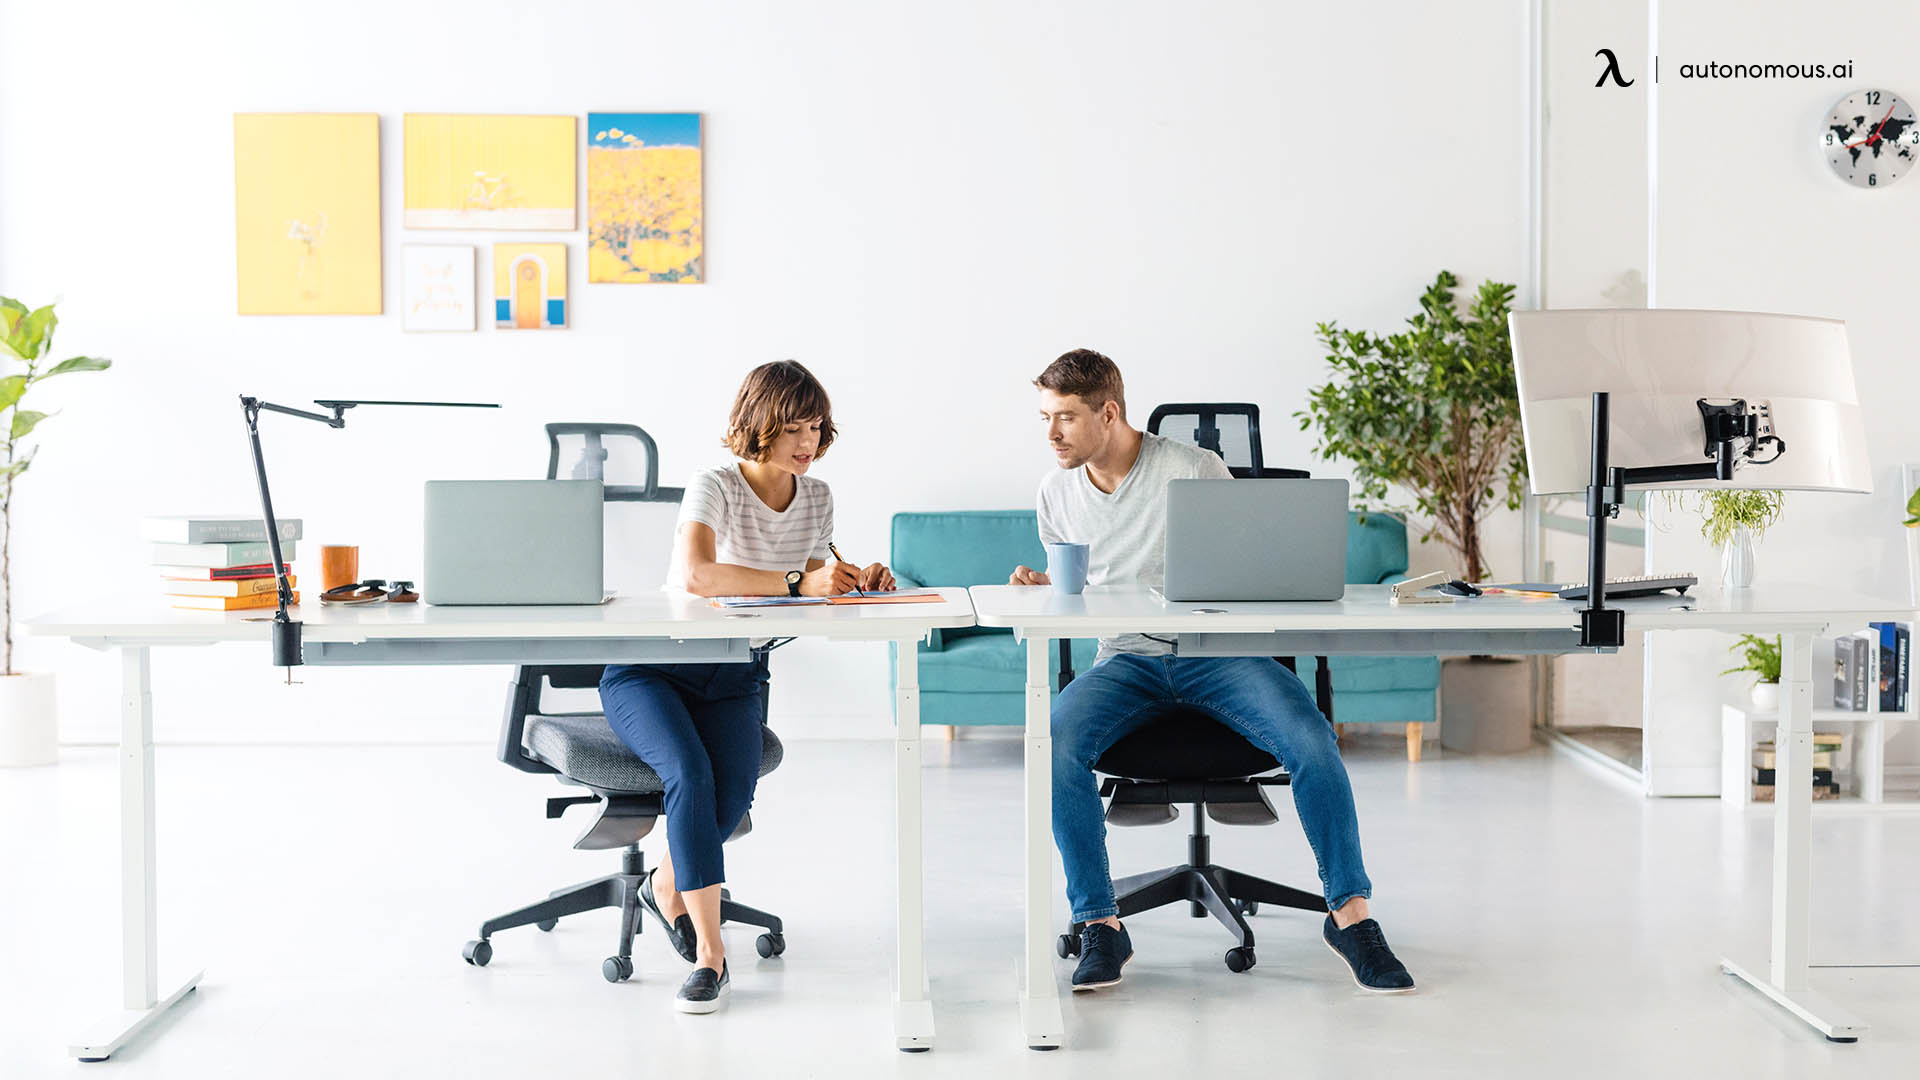 Choosing ergonomic chair with headrest for office